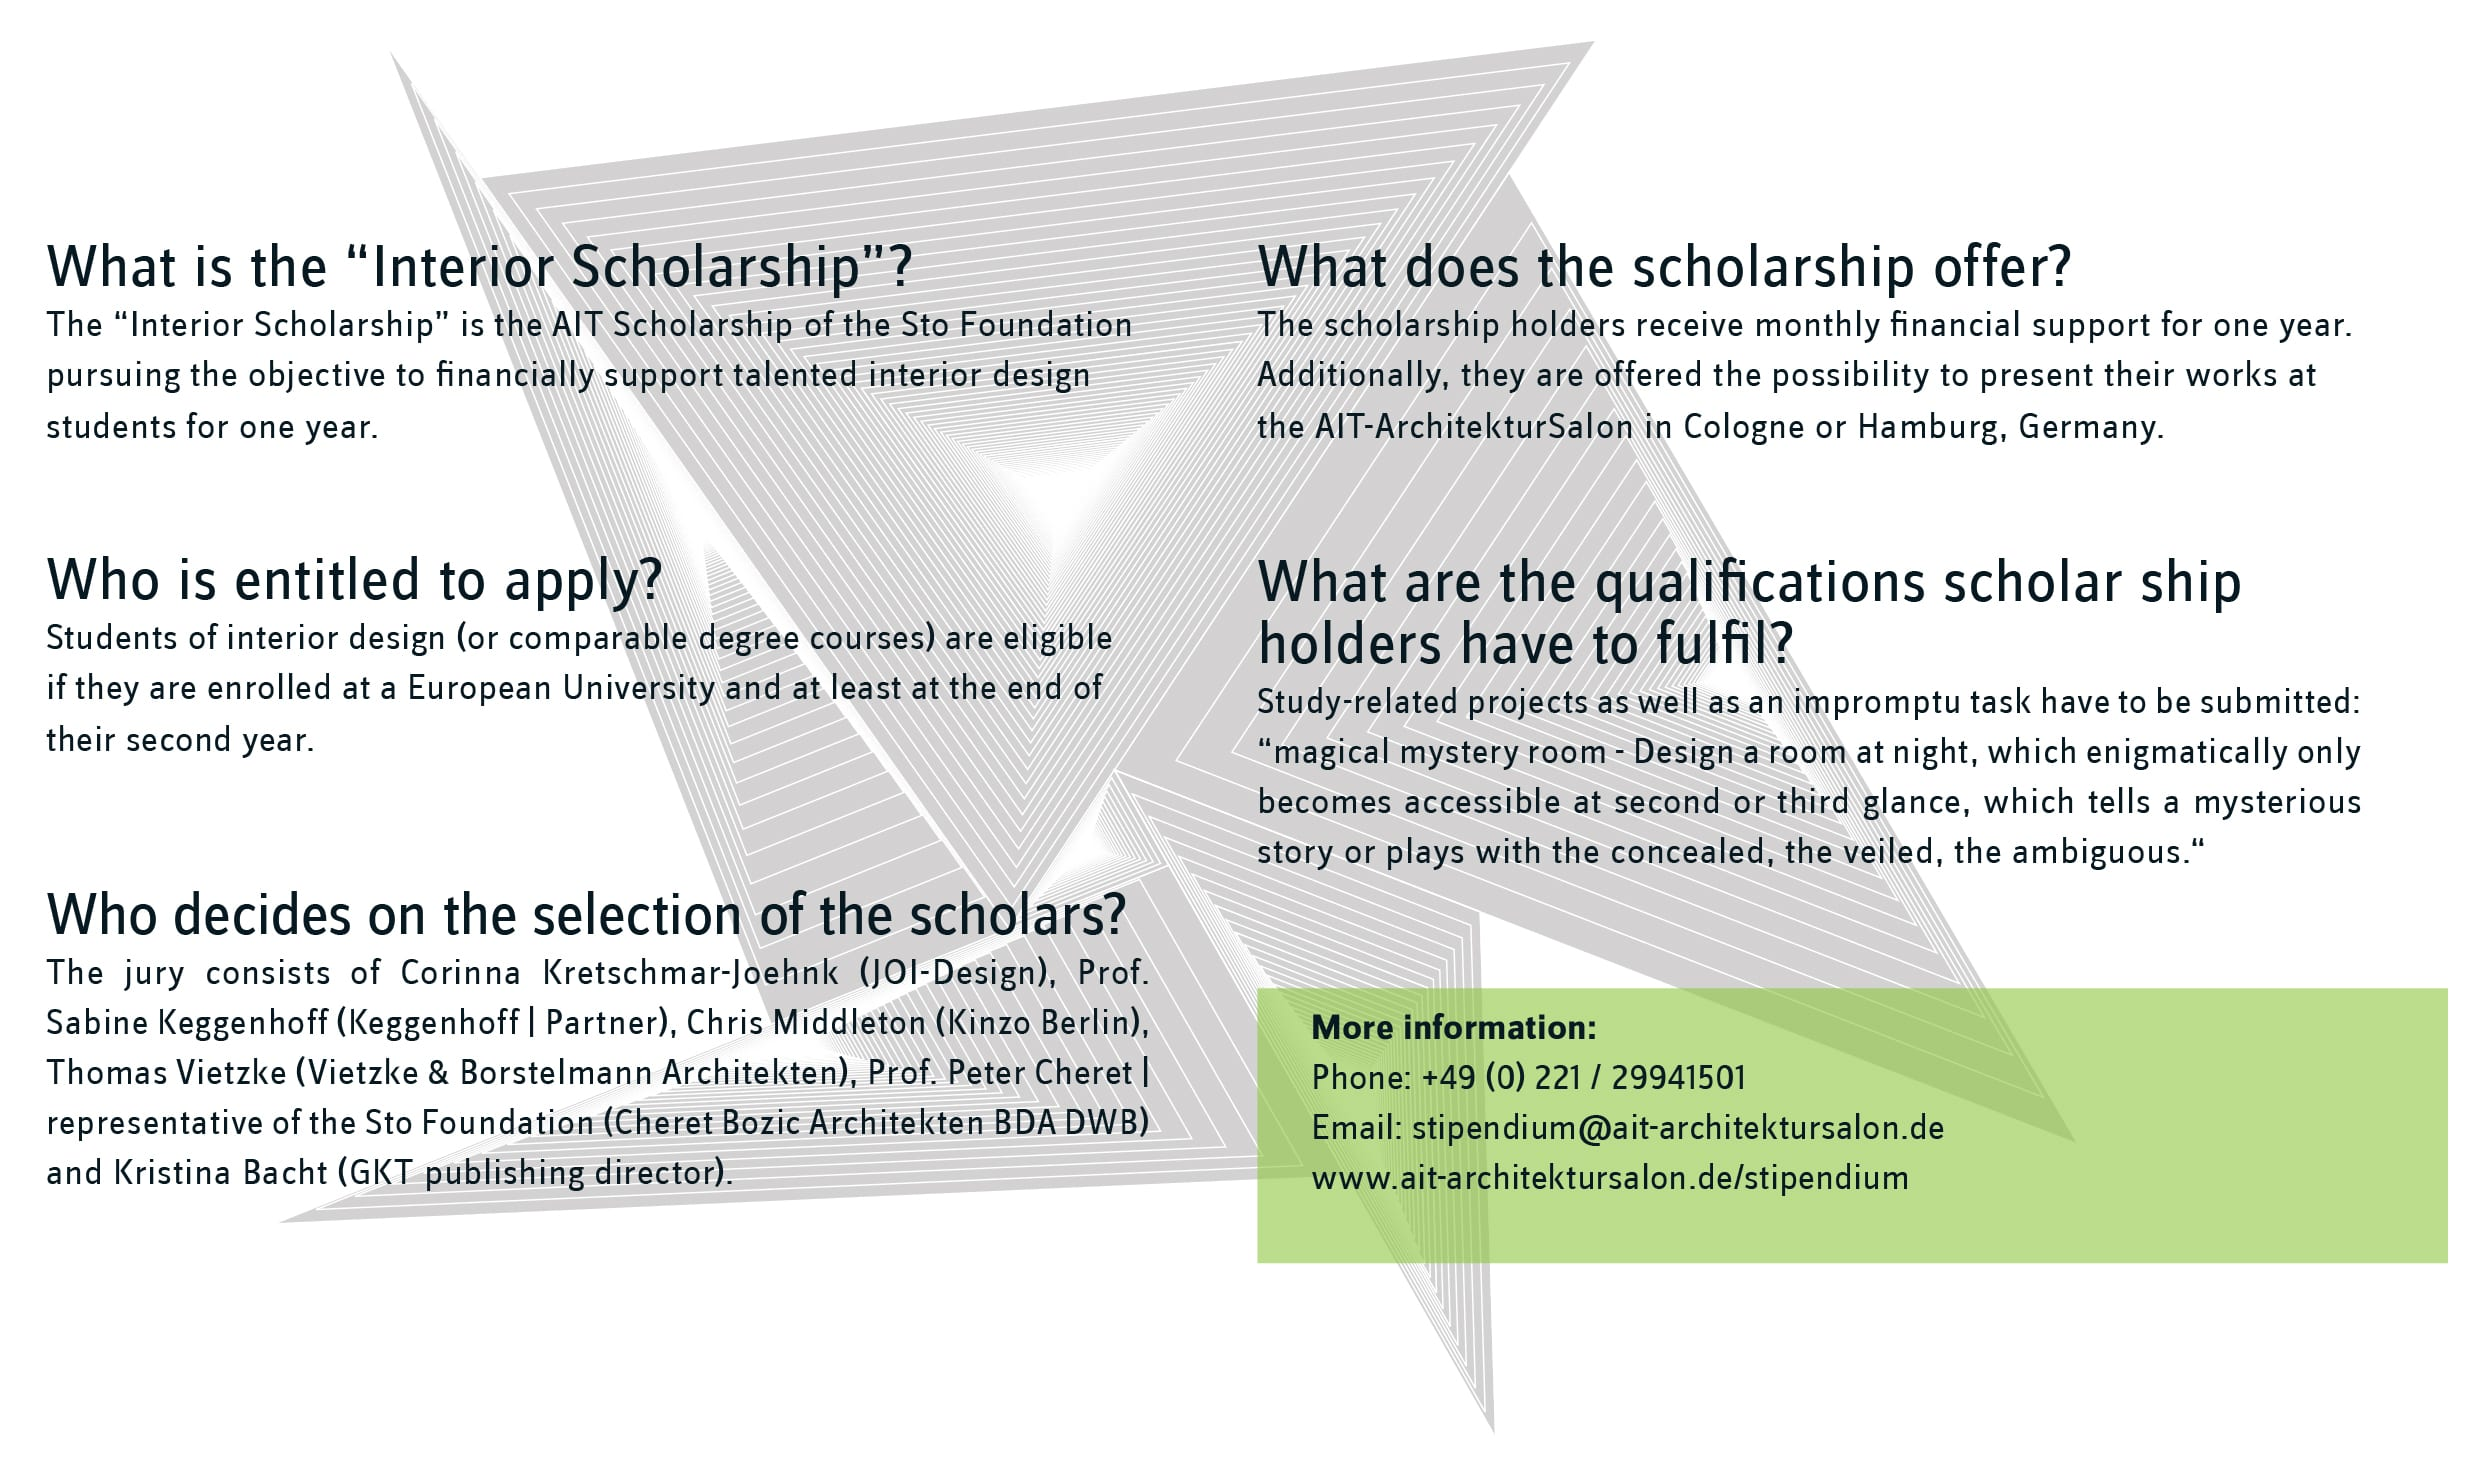 Scholarships for interior design students